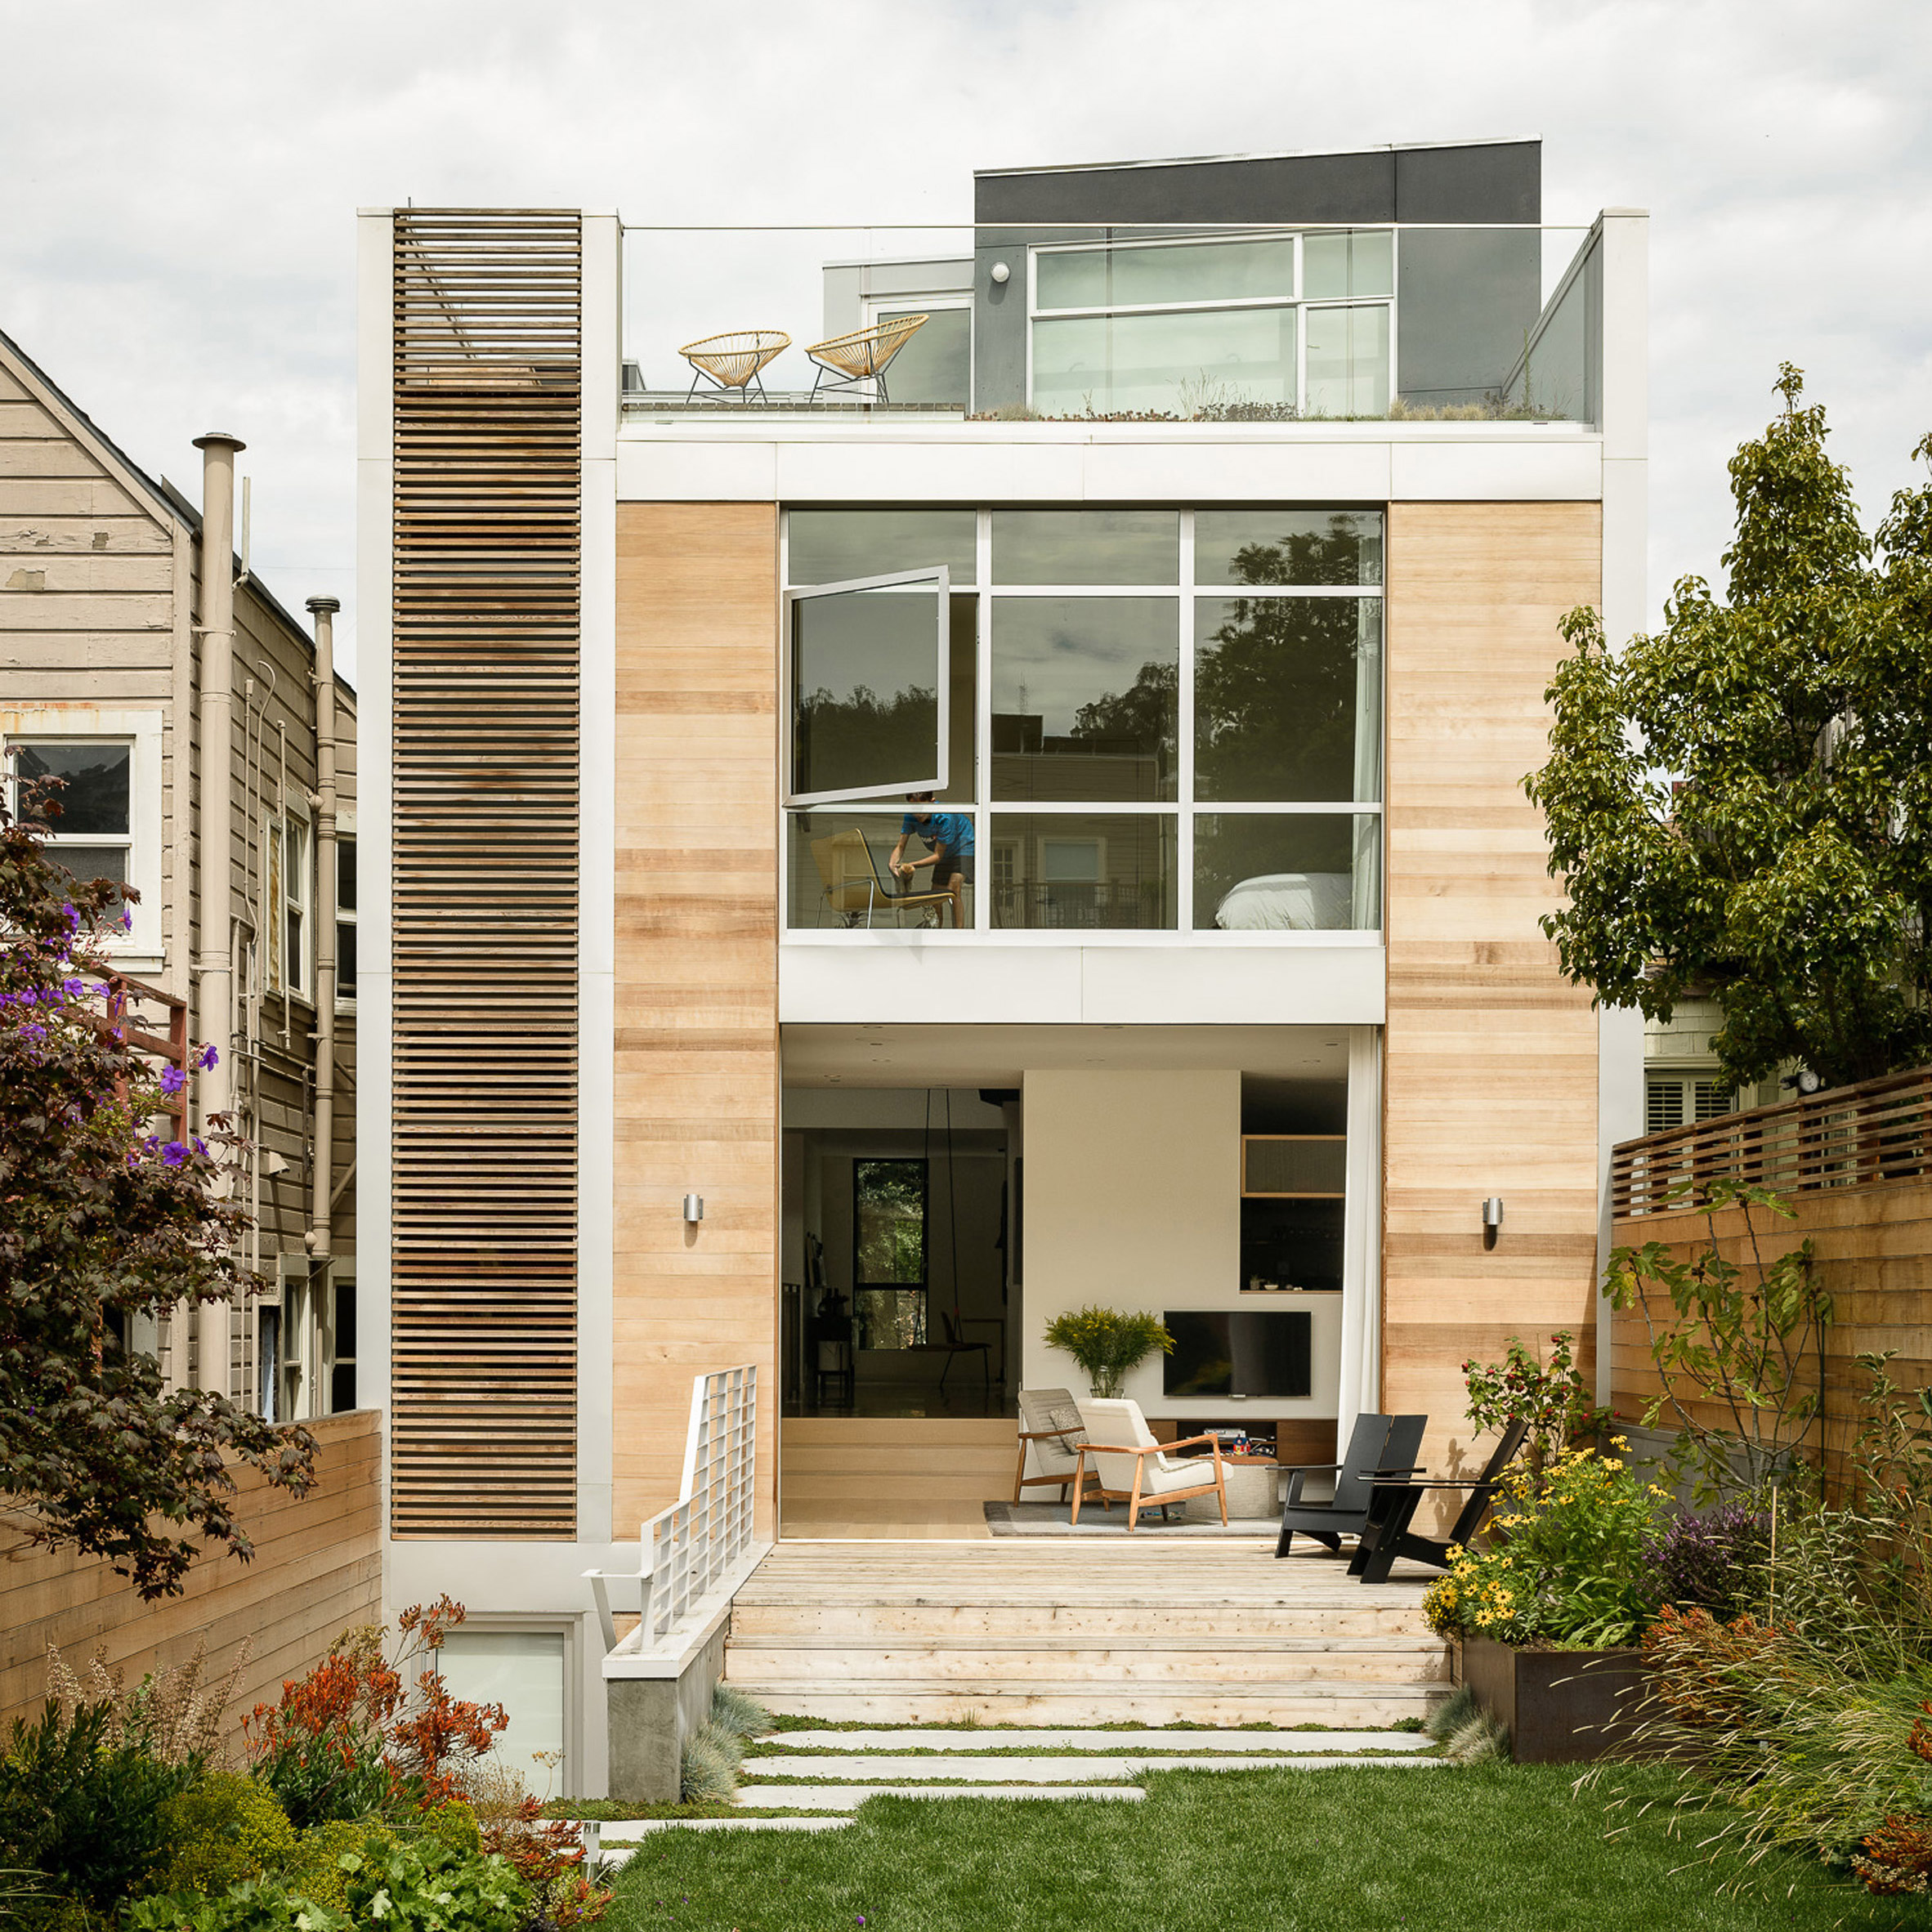 Architecture and design in San Francisco | Dezeen